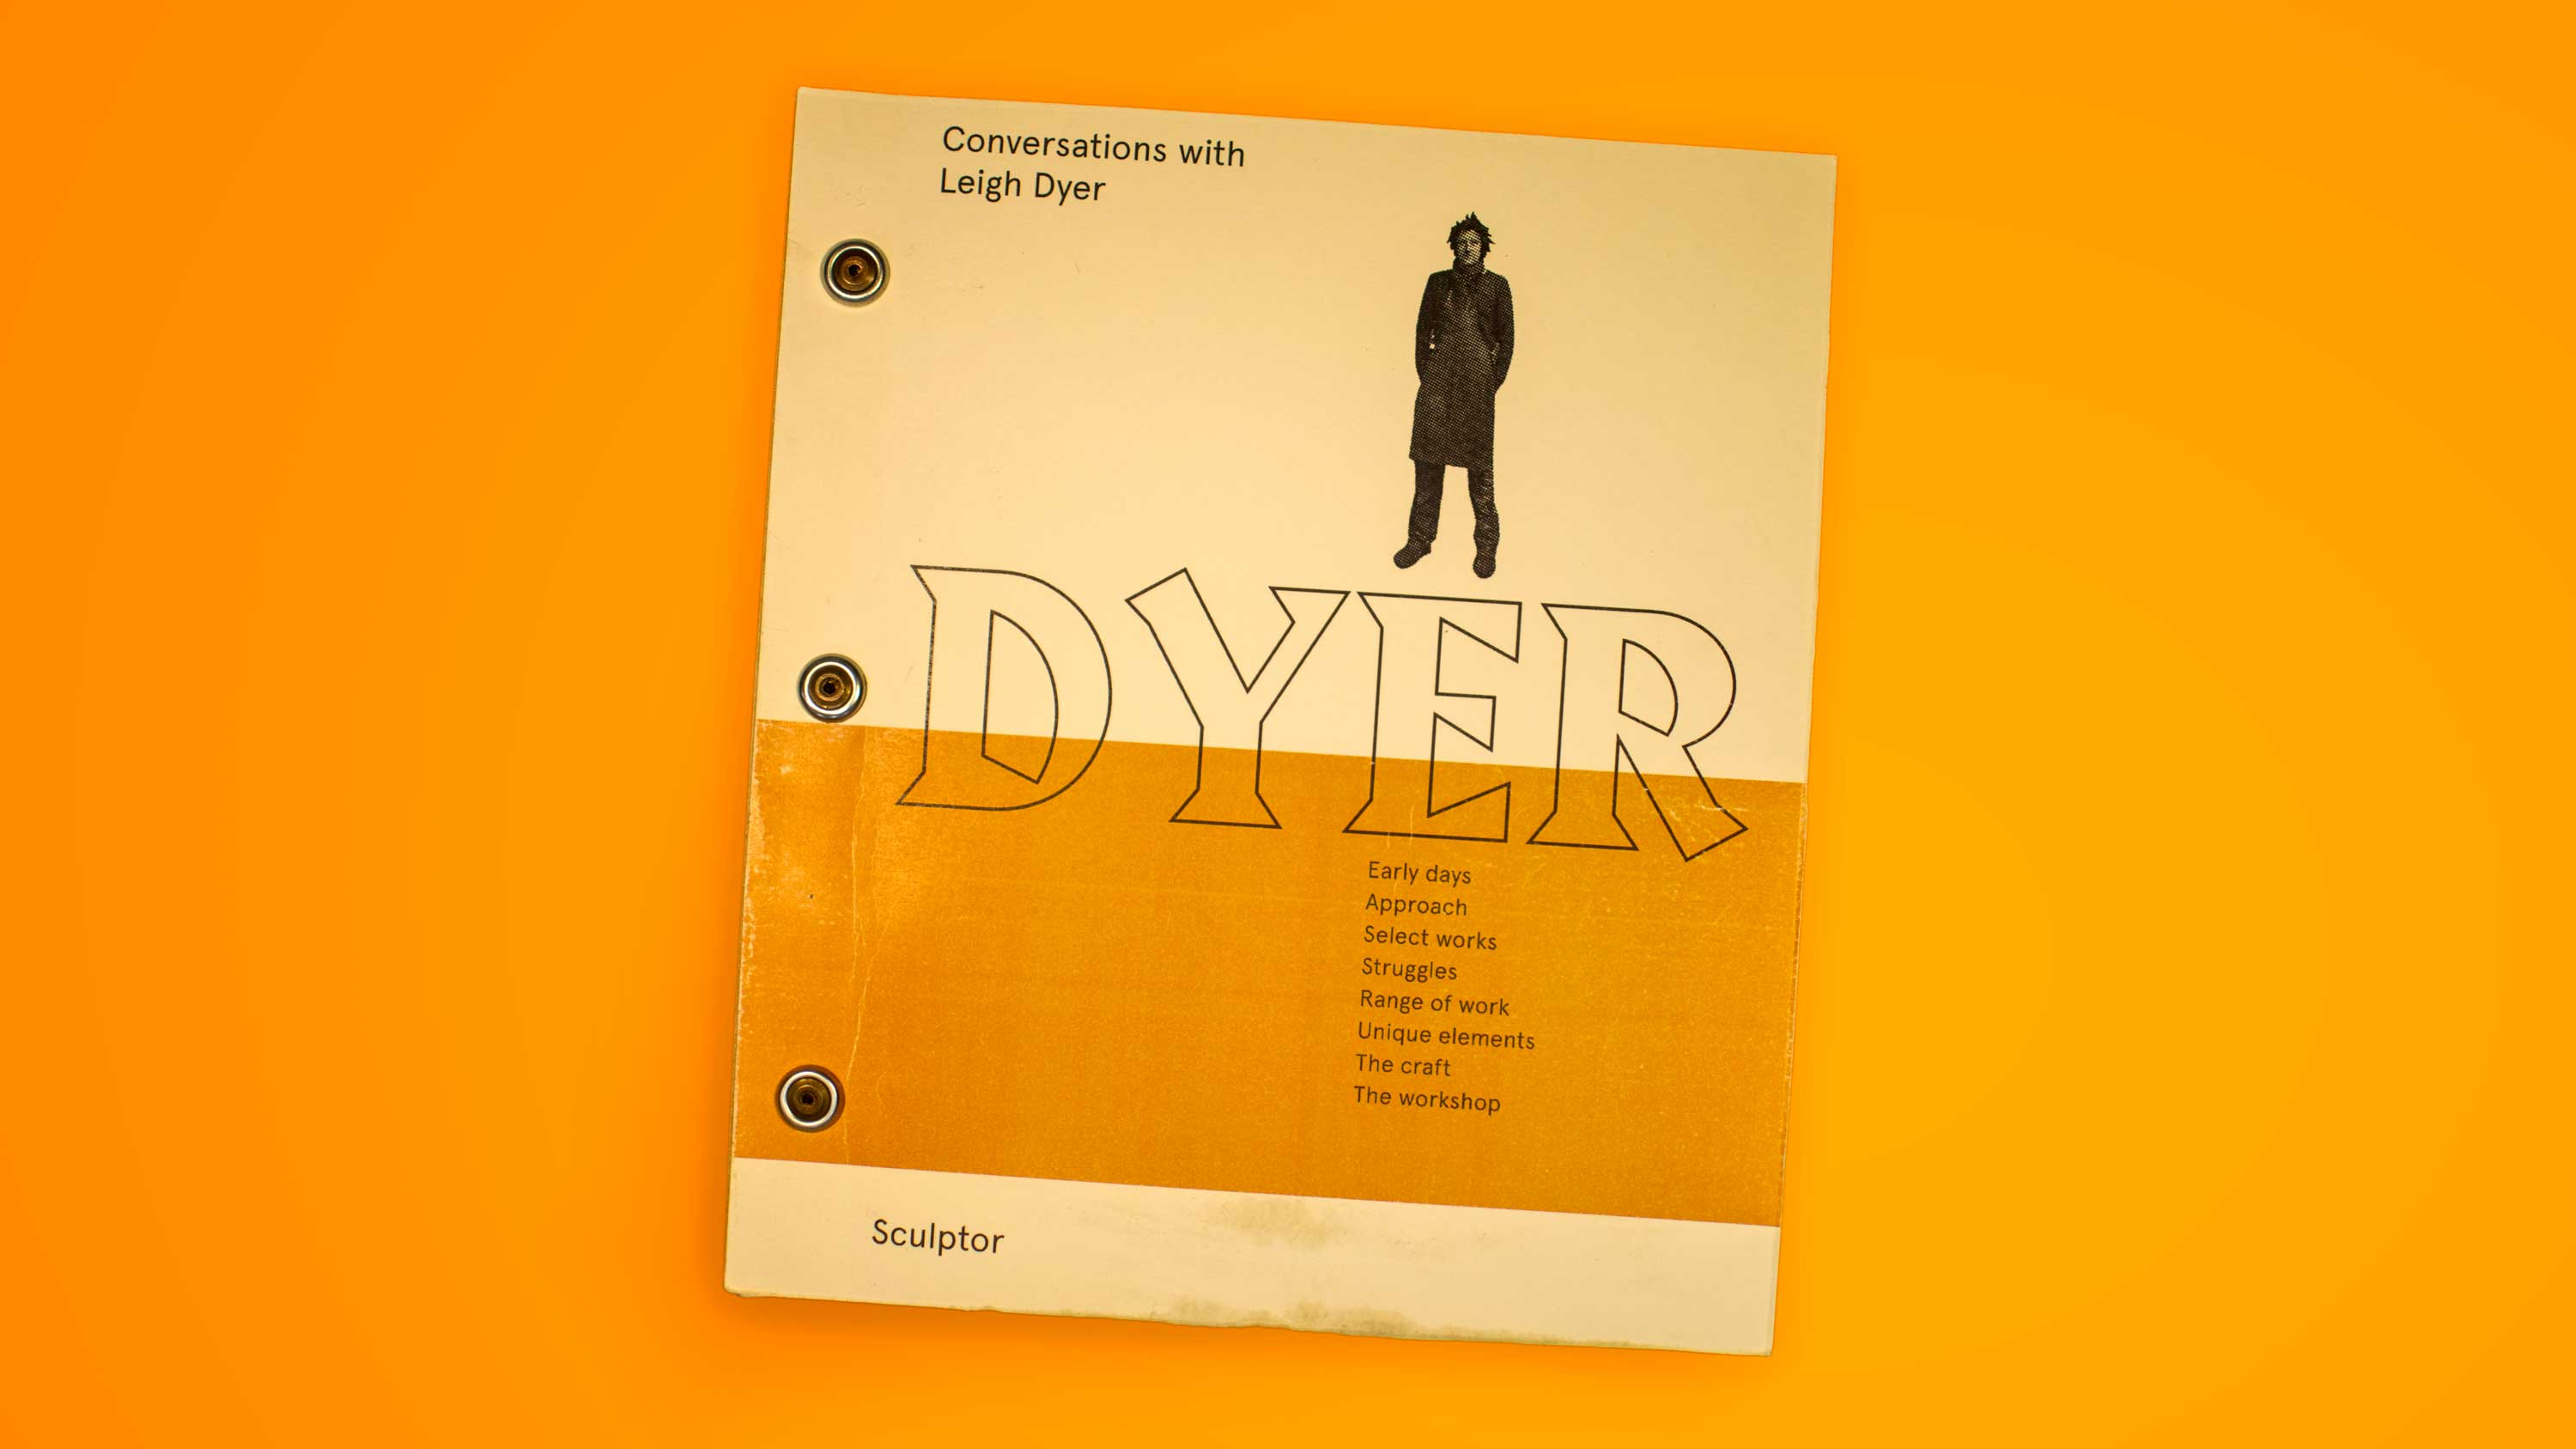 Conversations-with-dyer-cover